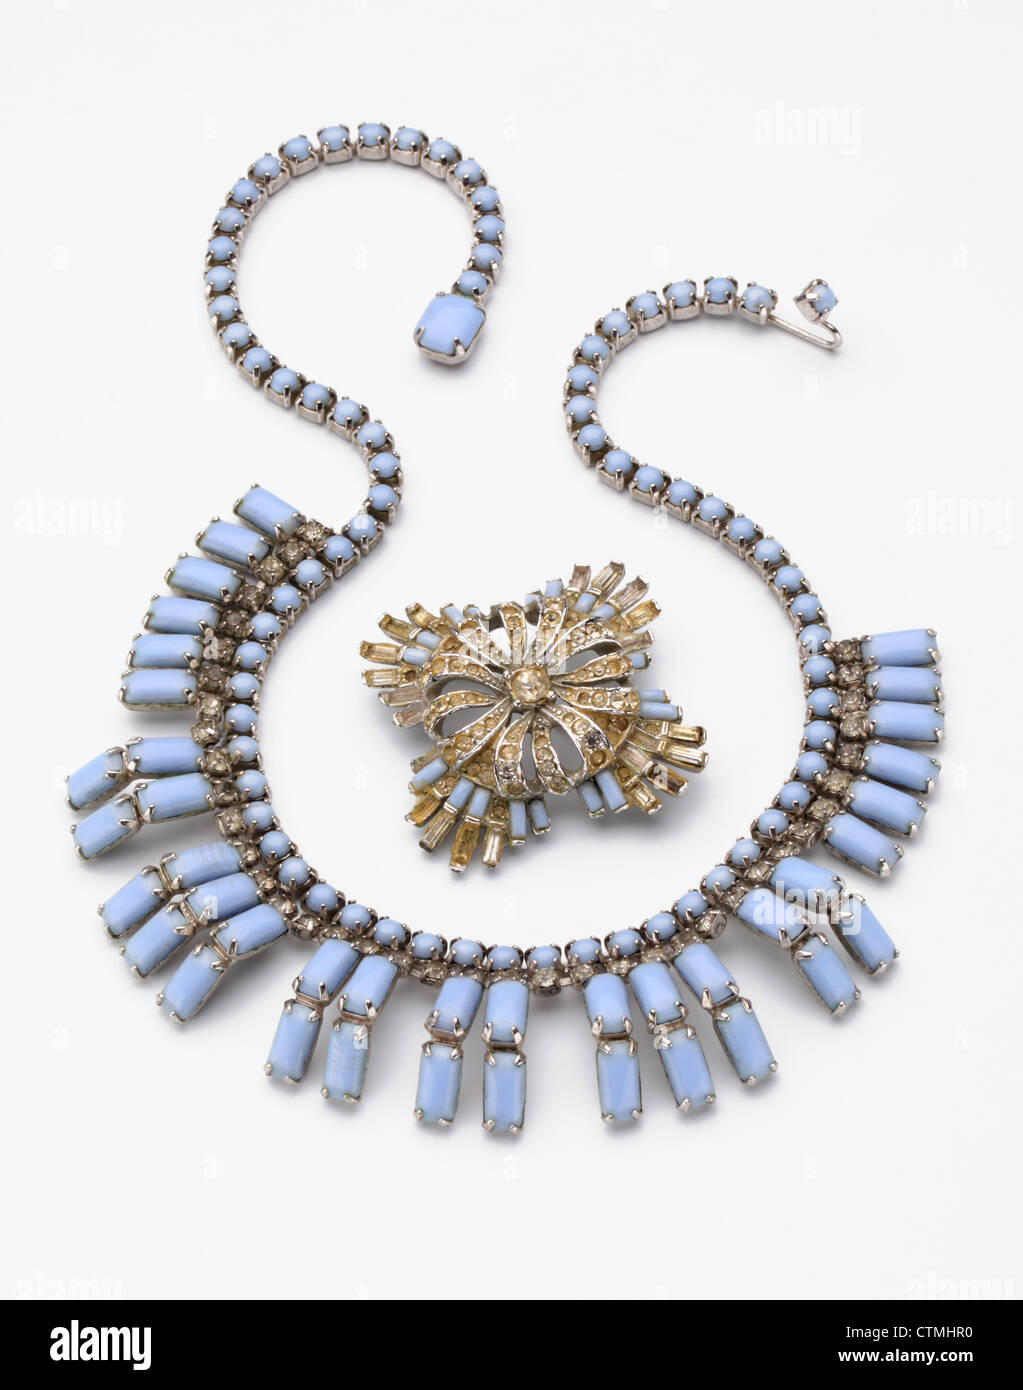 Costume jewelry. A a blue stoned necklace with matching broche - Stock Image